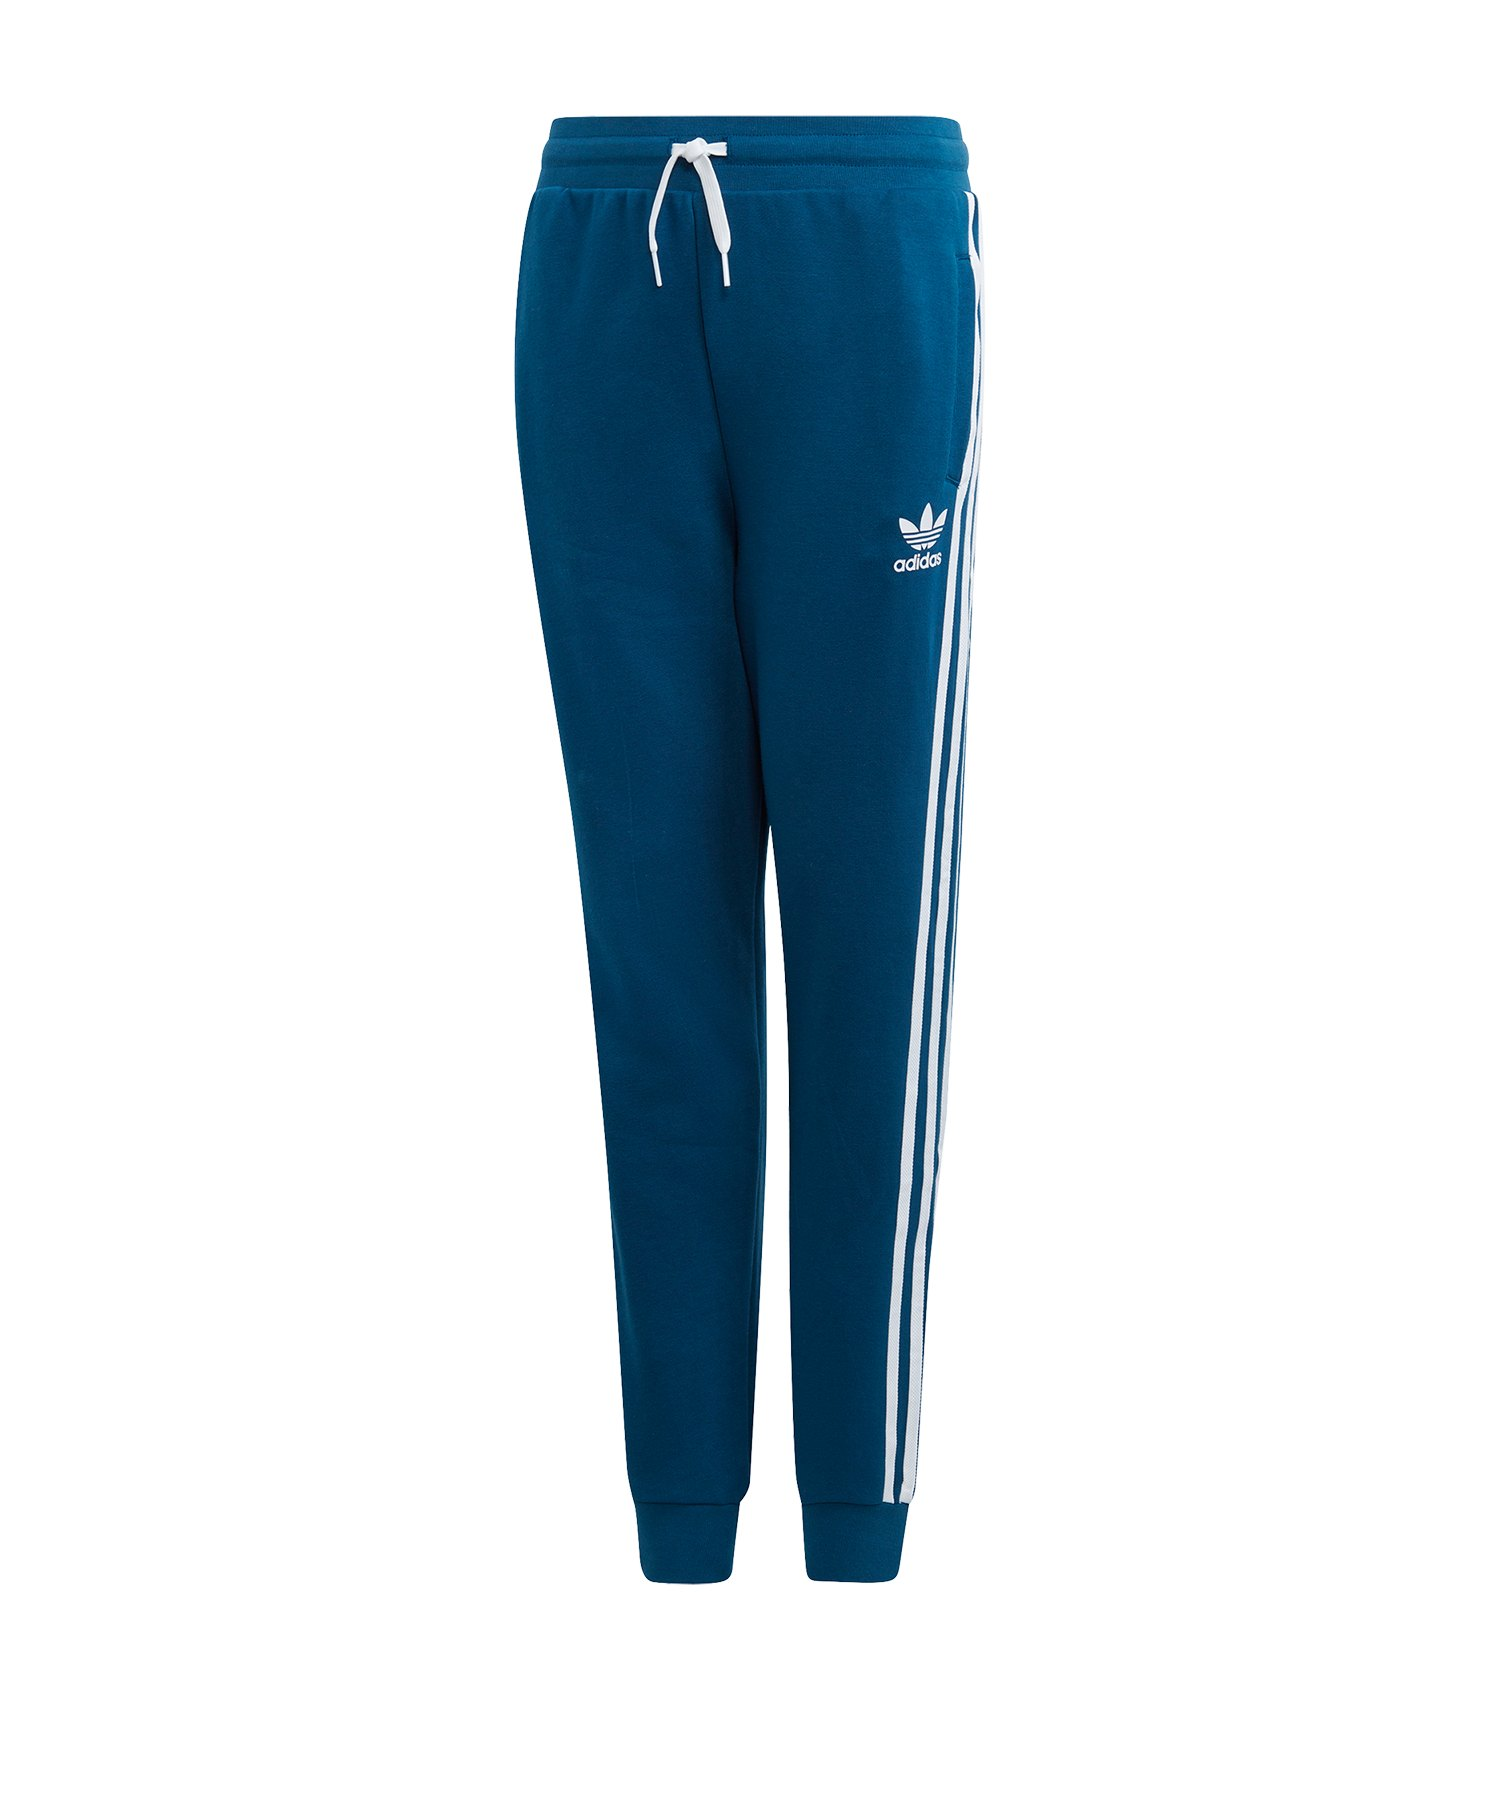 adidas Originals Trefoil Jogginghose Kids Blau